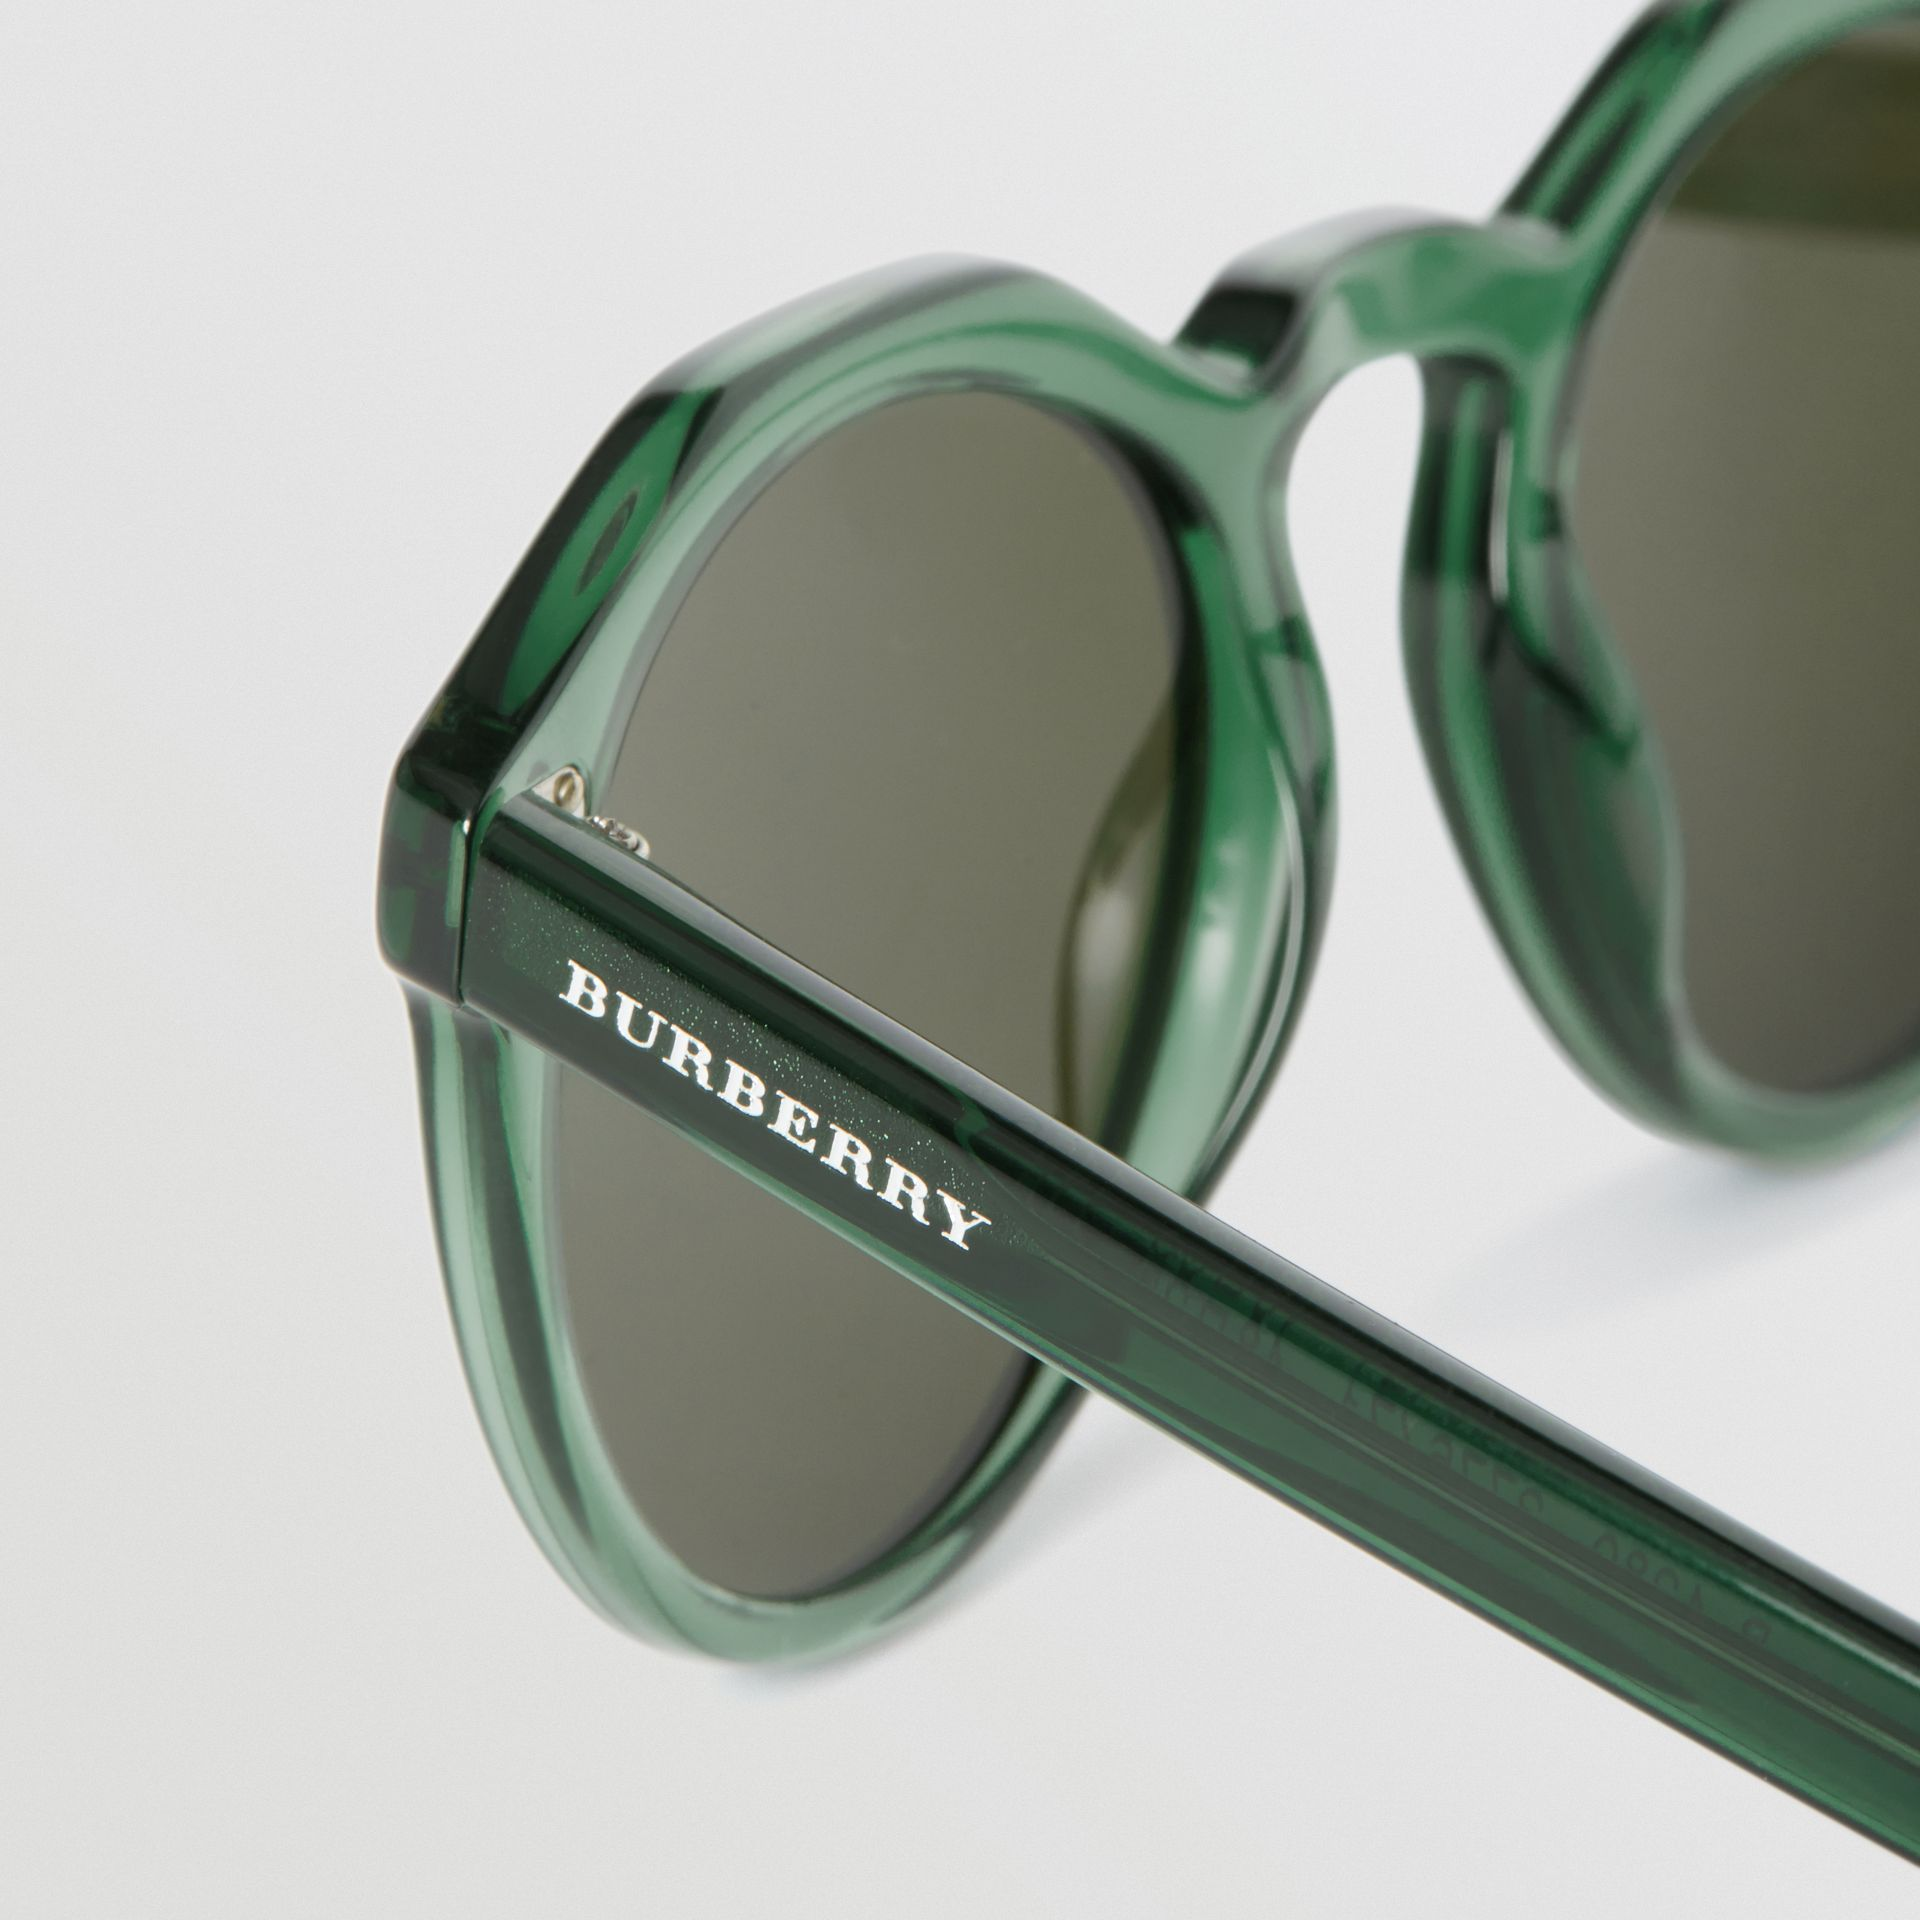 Keyhole Round Frame Sunglasses in Green - Men | Burberry - gallery image 1